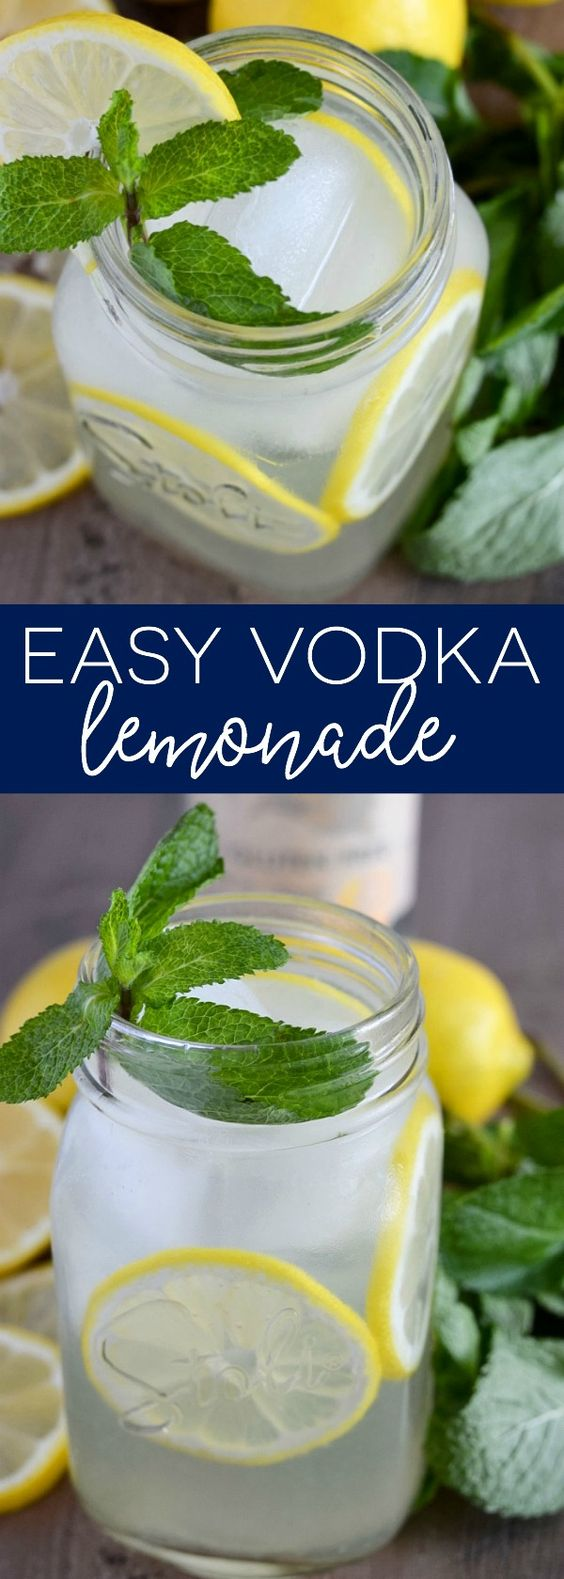 An easy vodka lemonade recipe for a simple summer cocktail. This recipe serves one but could easily be made into a large batch. Sponsored by Stoli Gluten Free vodka.